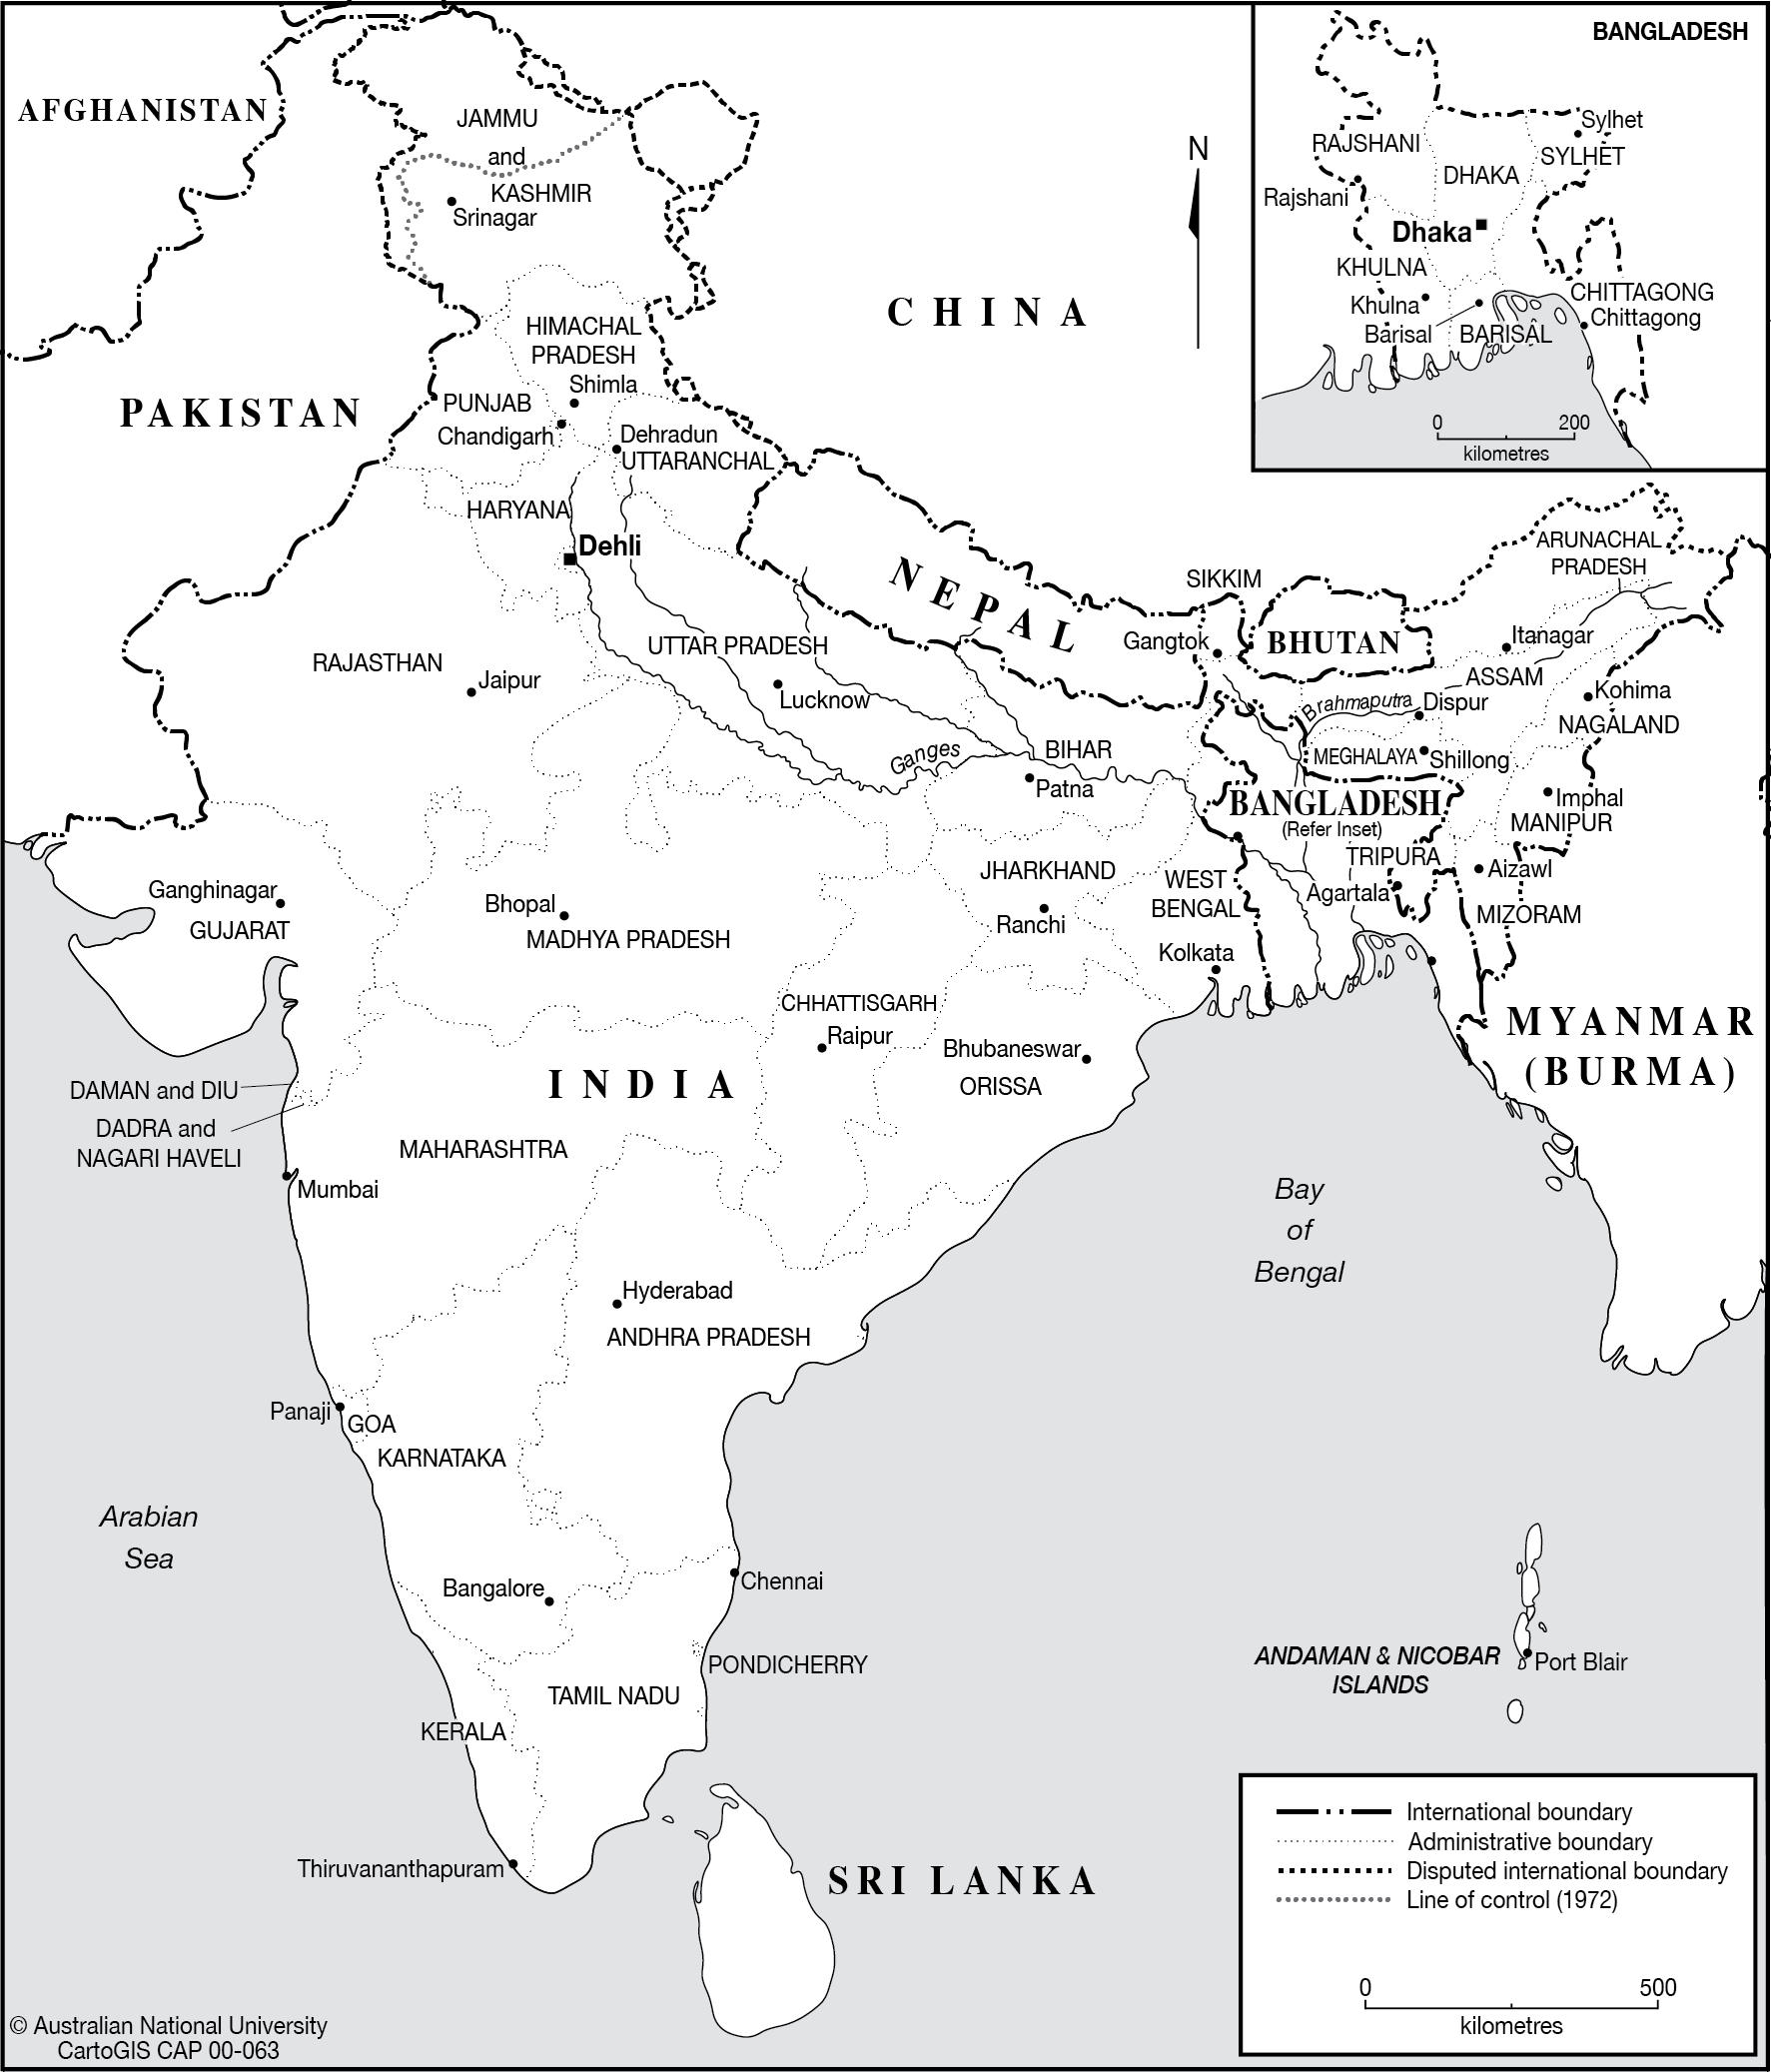 India states and capitals - CartoGIS Services Maps Online - ANU on india river map, india south asia map, texas county map black and white, india political map, river clip art black and white, india map with latitude and longitude, india map with city,